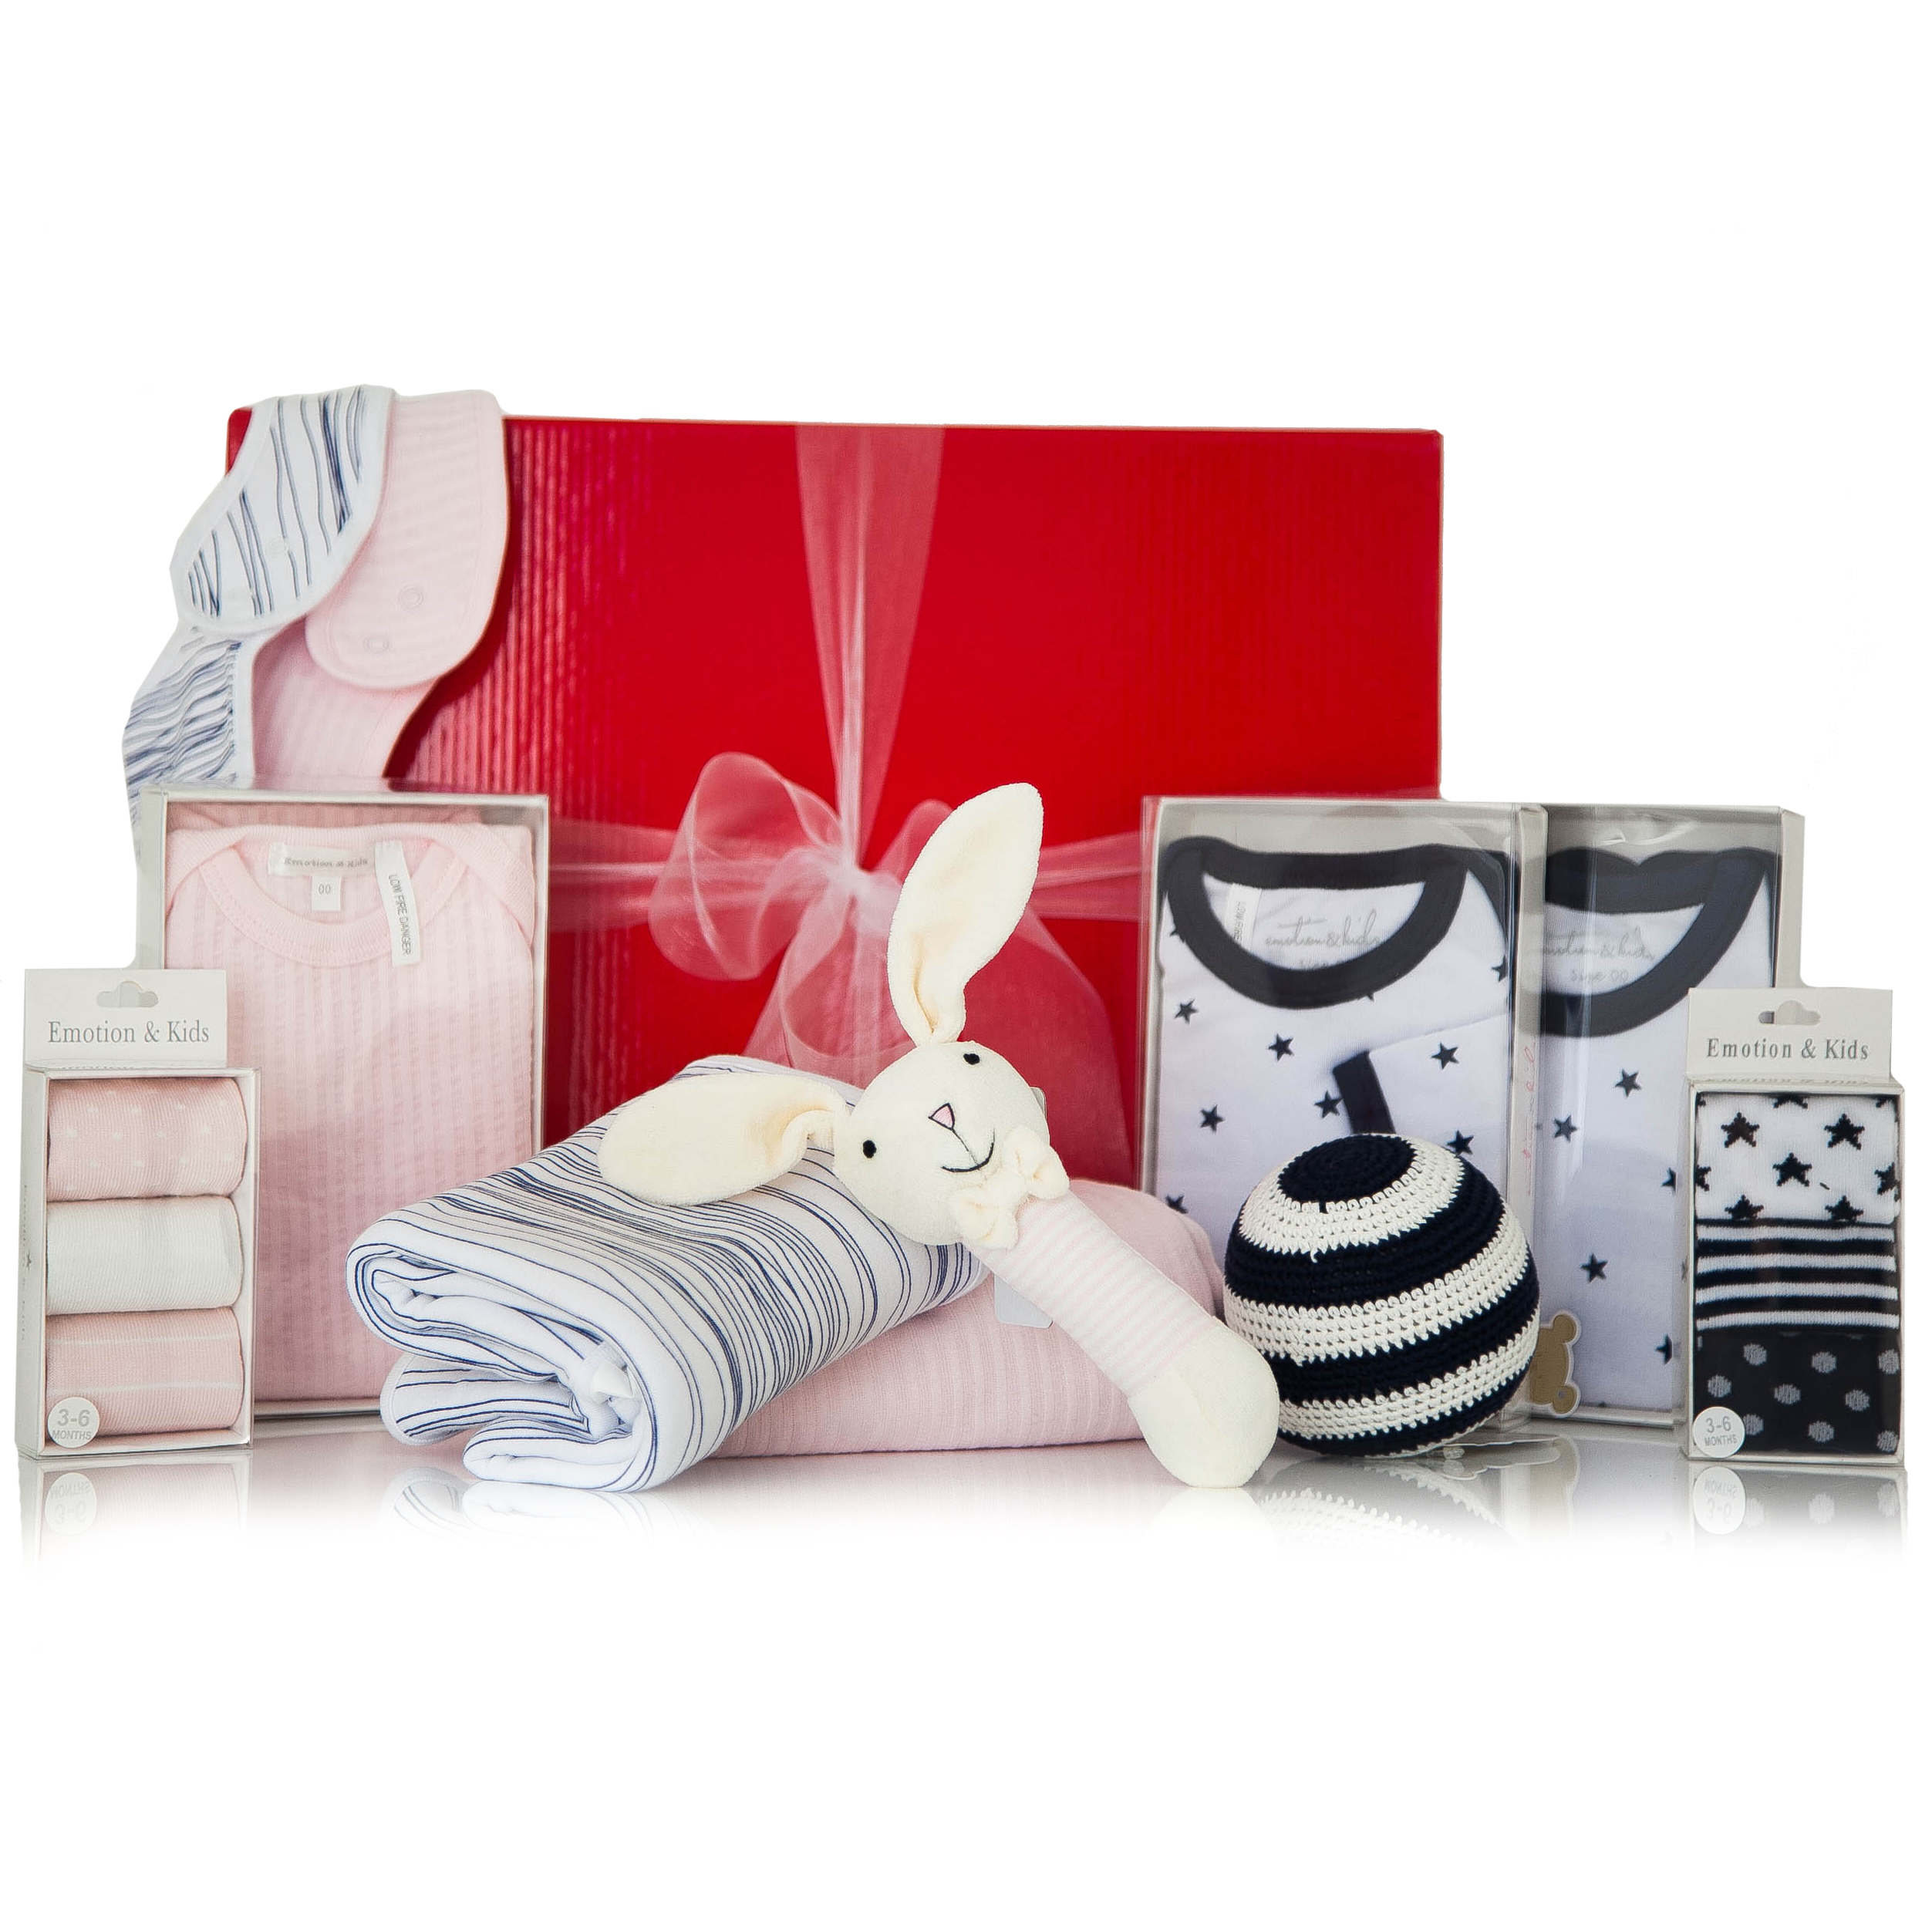 Baby Gift Ideas Melbourne : Christmas gift hampers melbourne best baby